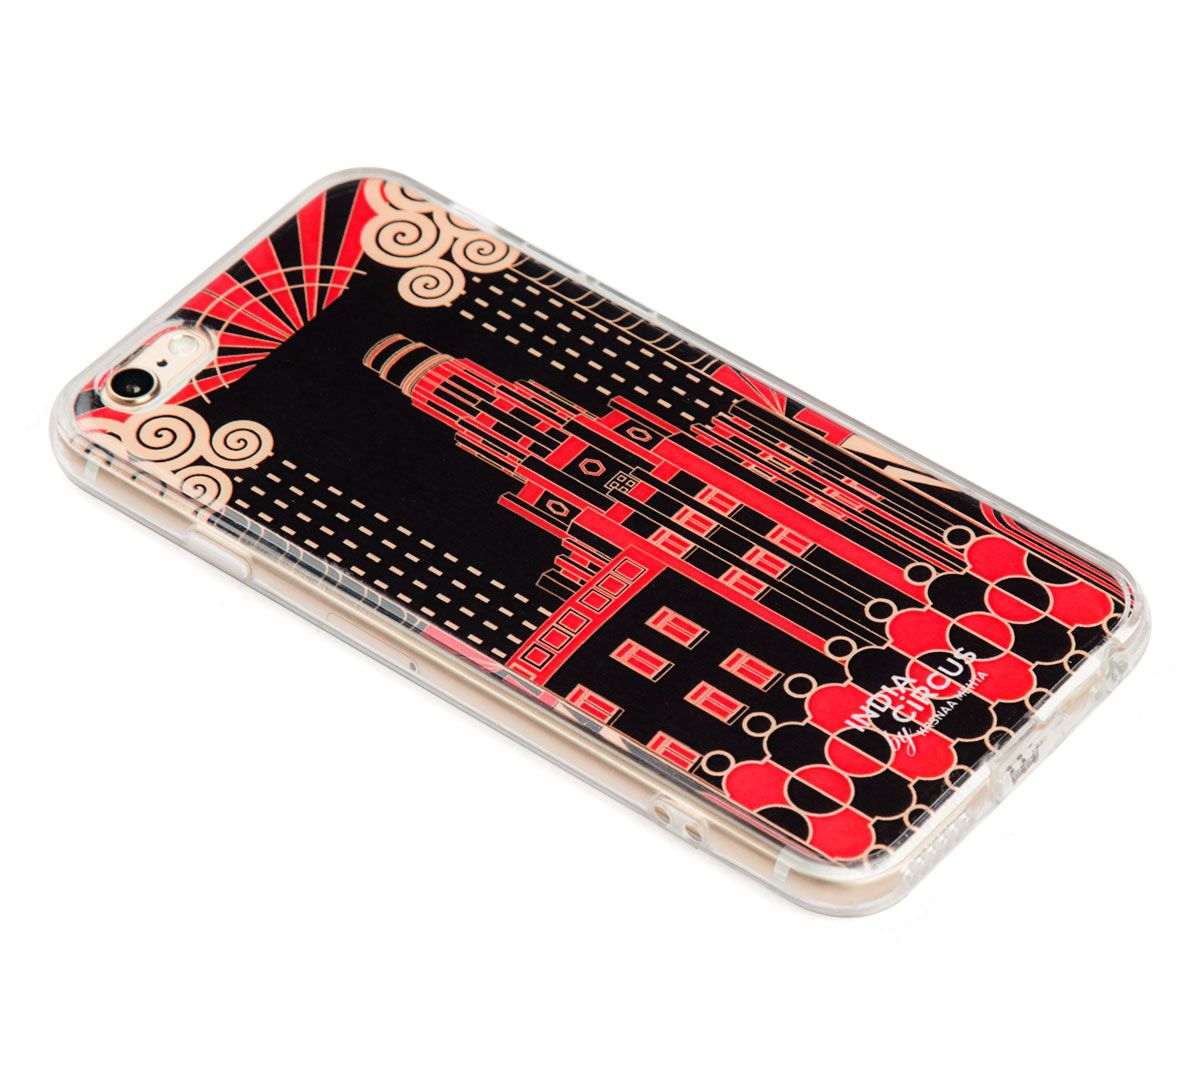 Buy iPhone Cases Online